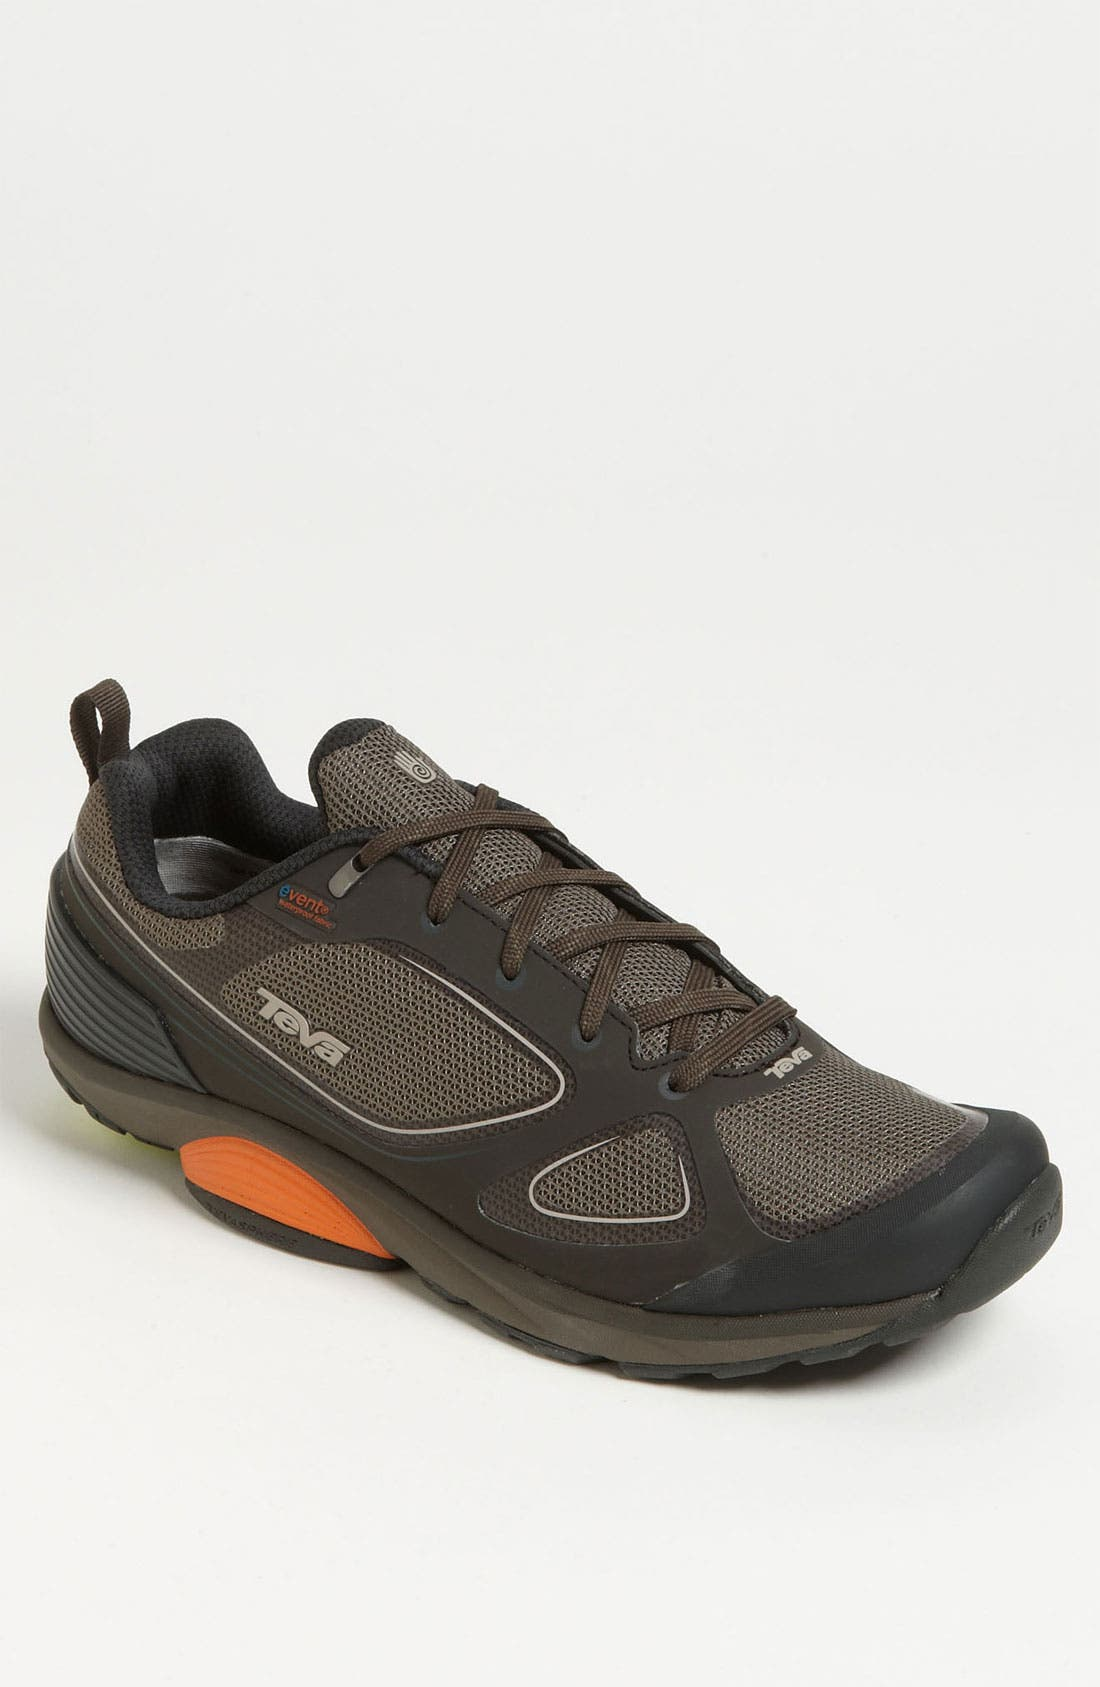 Alternate Image 1 Selected - Teva 'TevaSphere Trail' Training Shoe (Men)